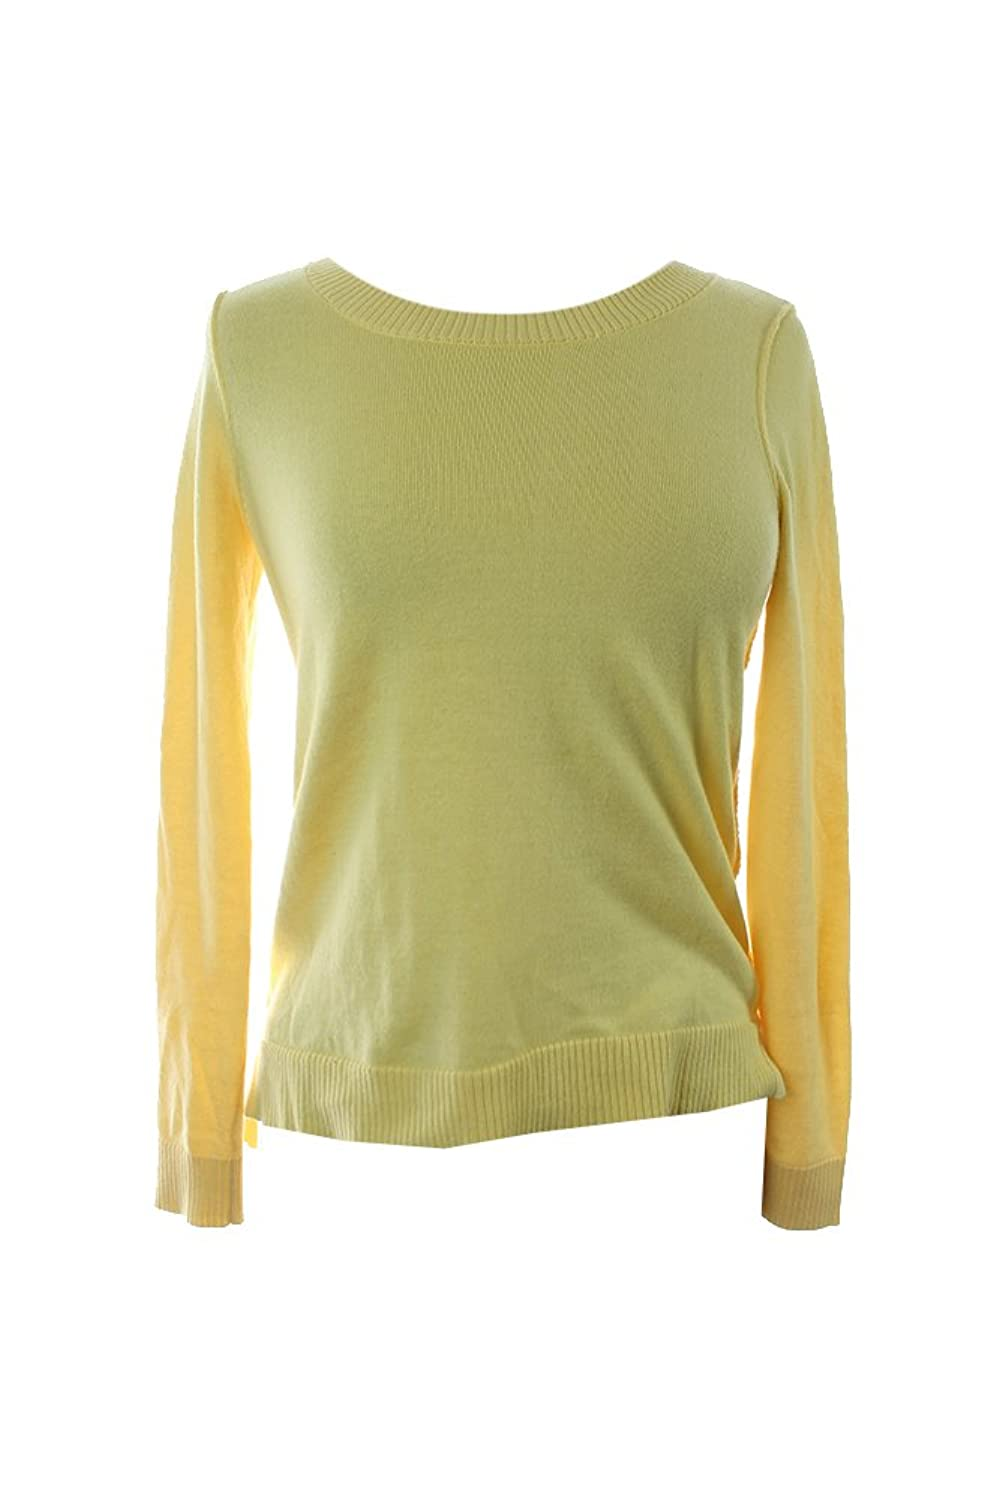 Inc. International Concepts Yellow High-Low Sweater M